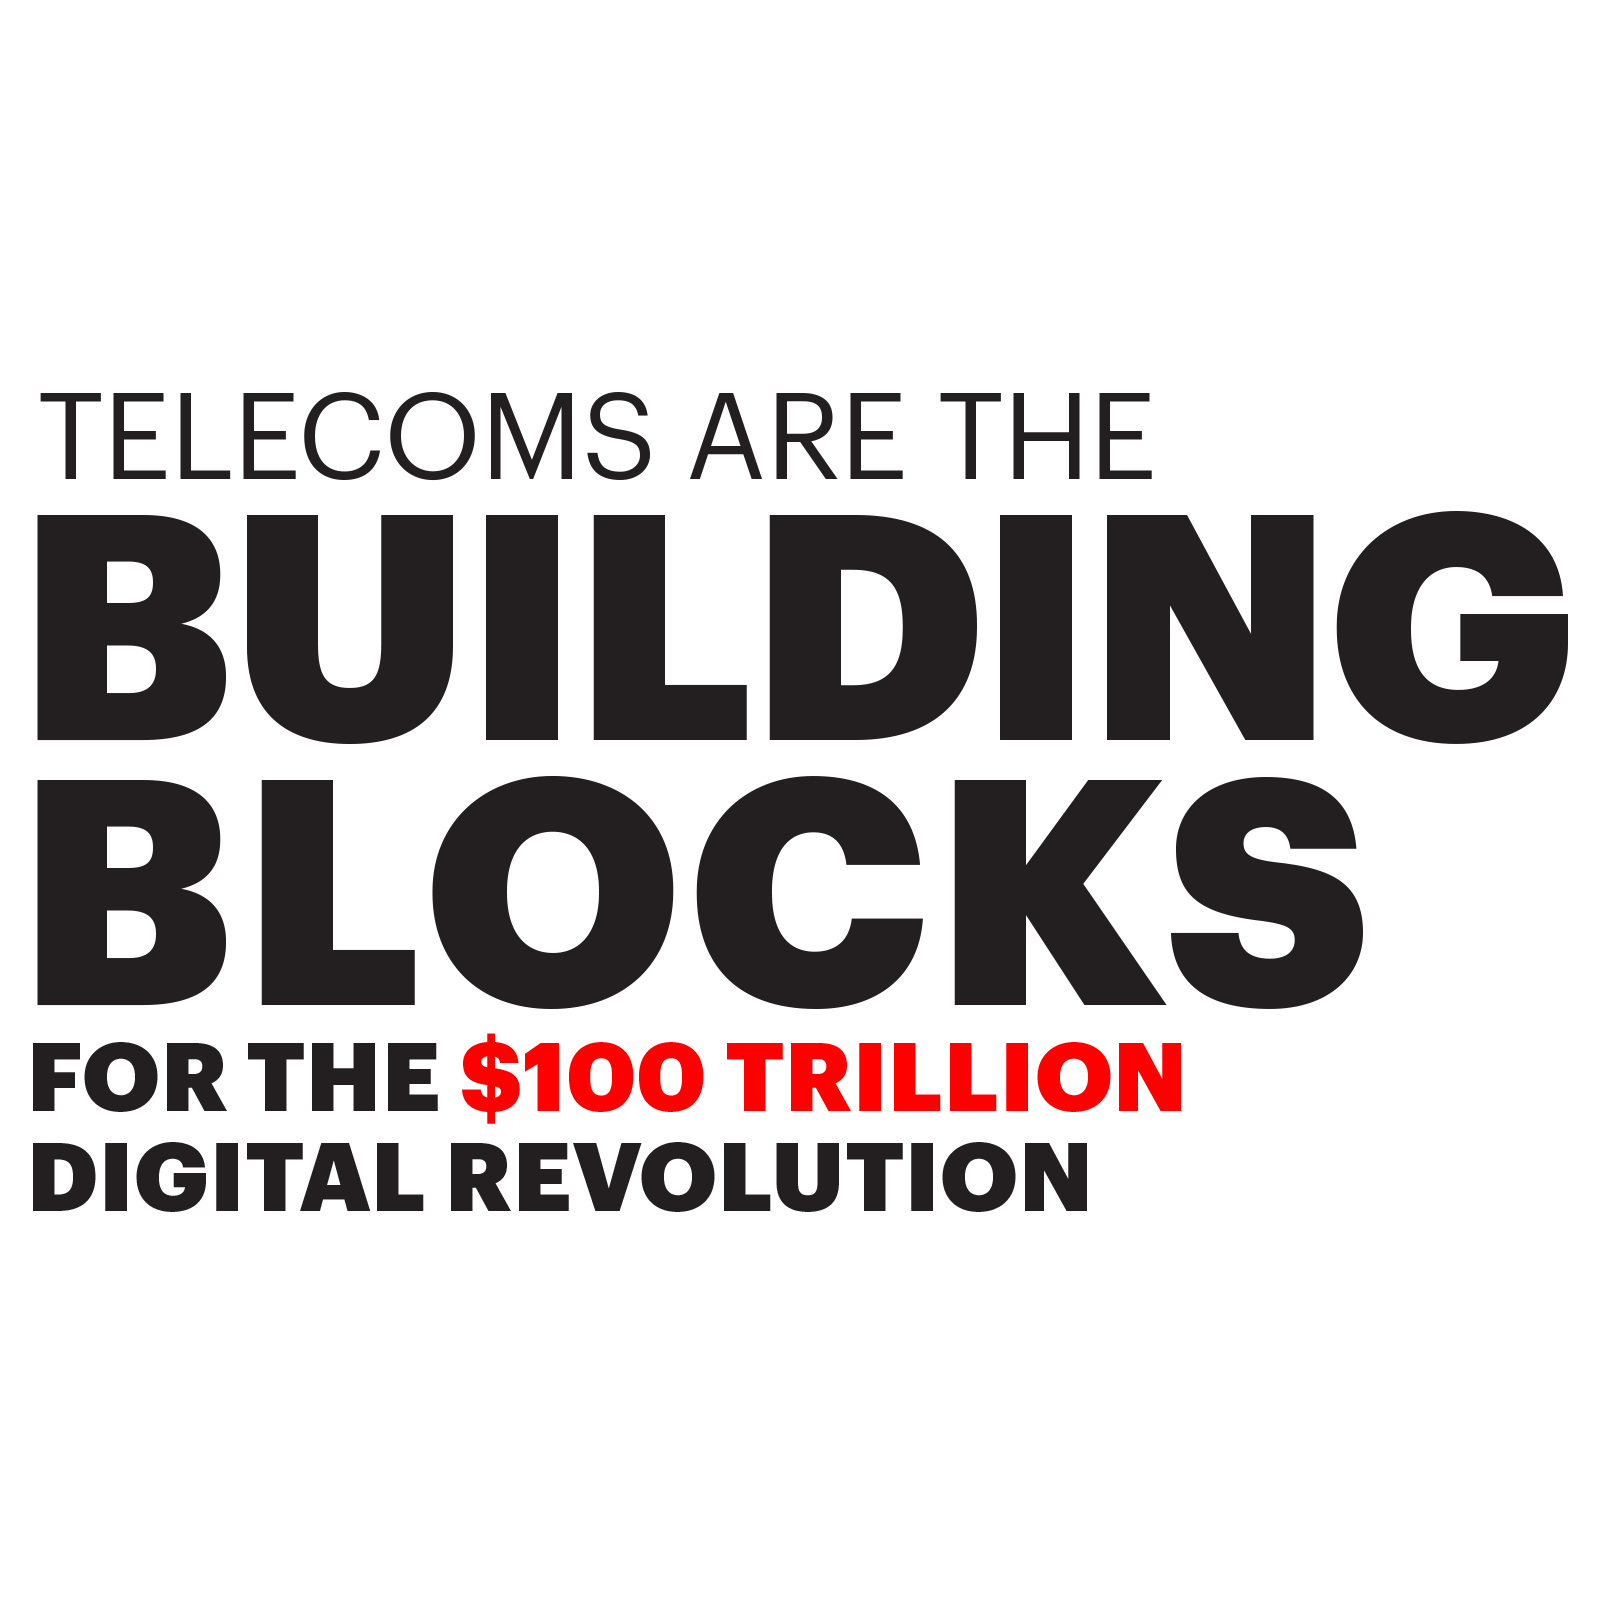 Telecoms are the building blocks for the $100 trillion digital revolution